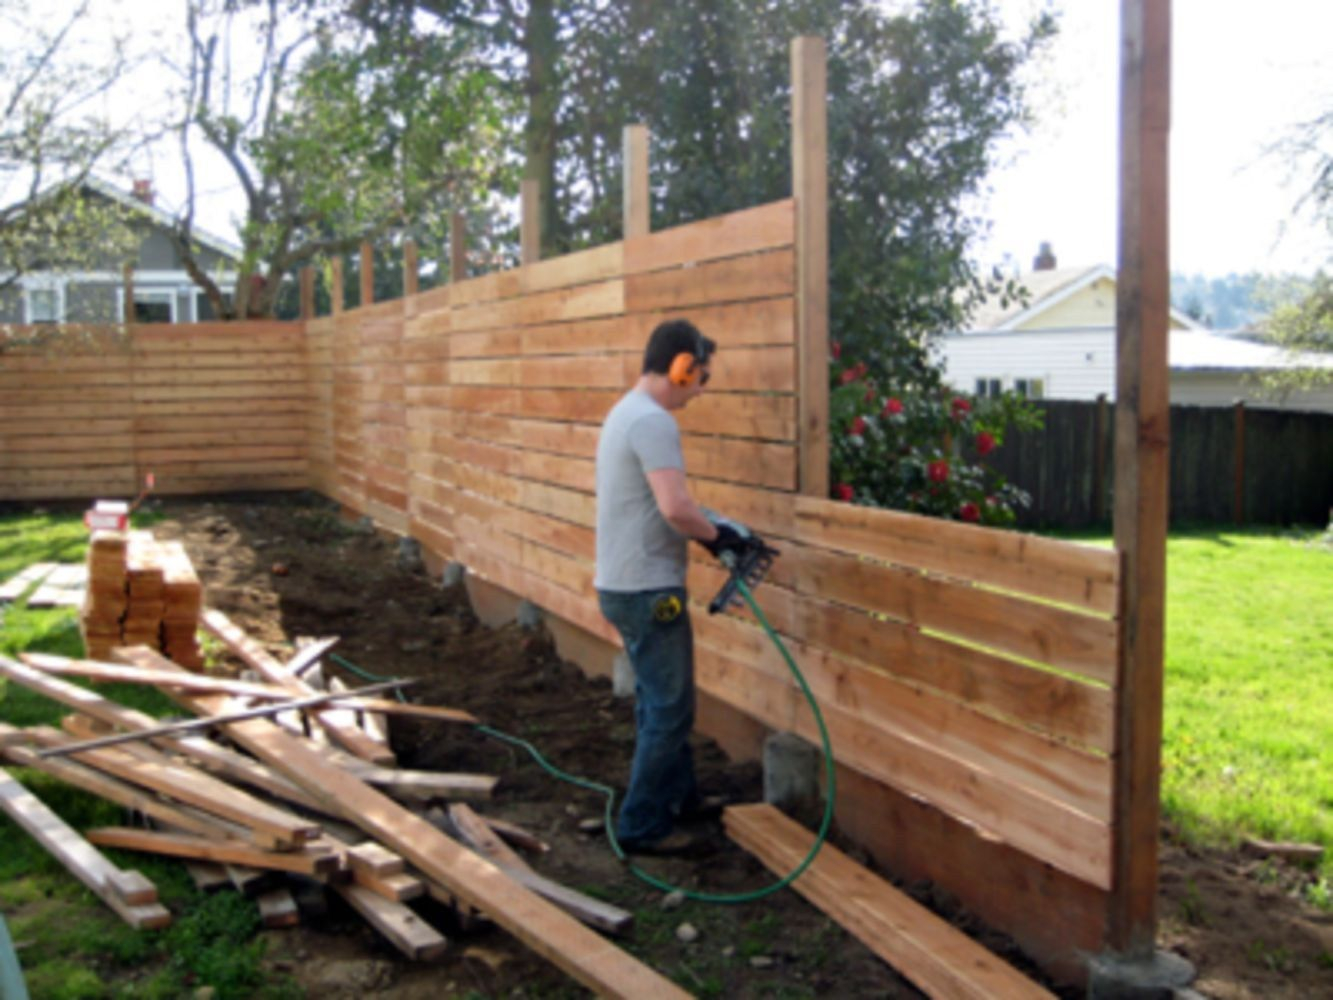 Cheap Diy Privacy Fence Ideas 53 Housing Ideas Diy Privacy with 11 Genius Designs of How to Craft Cheap Fences For Backyard